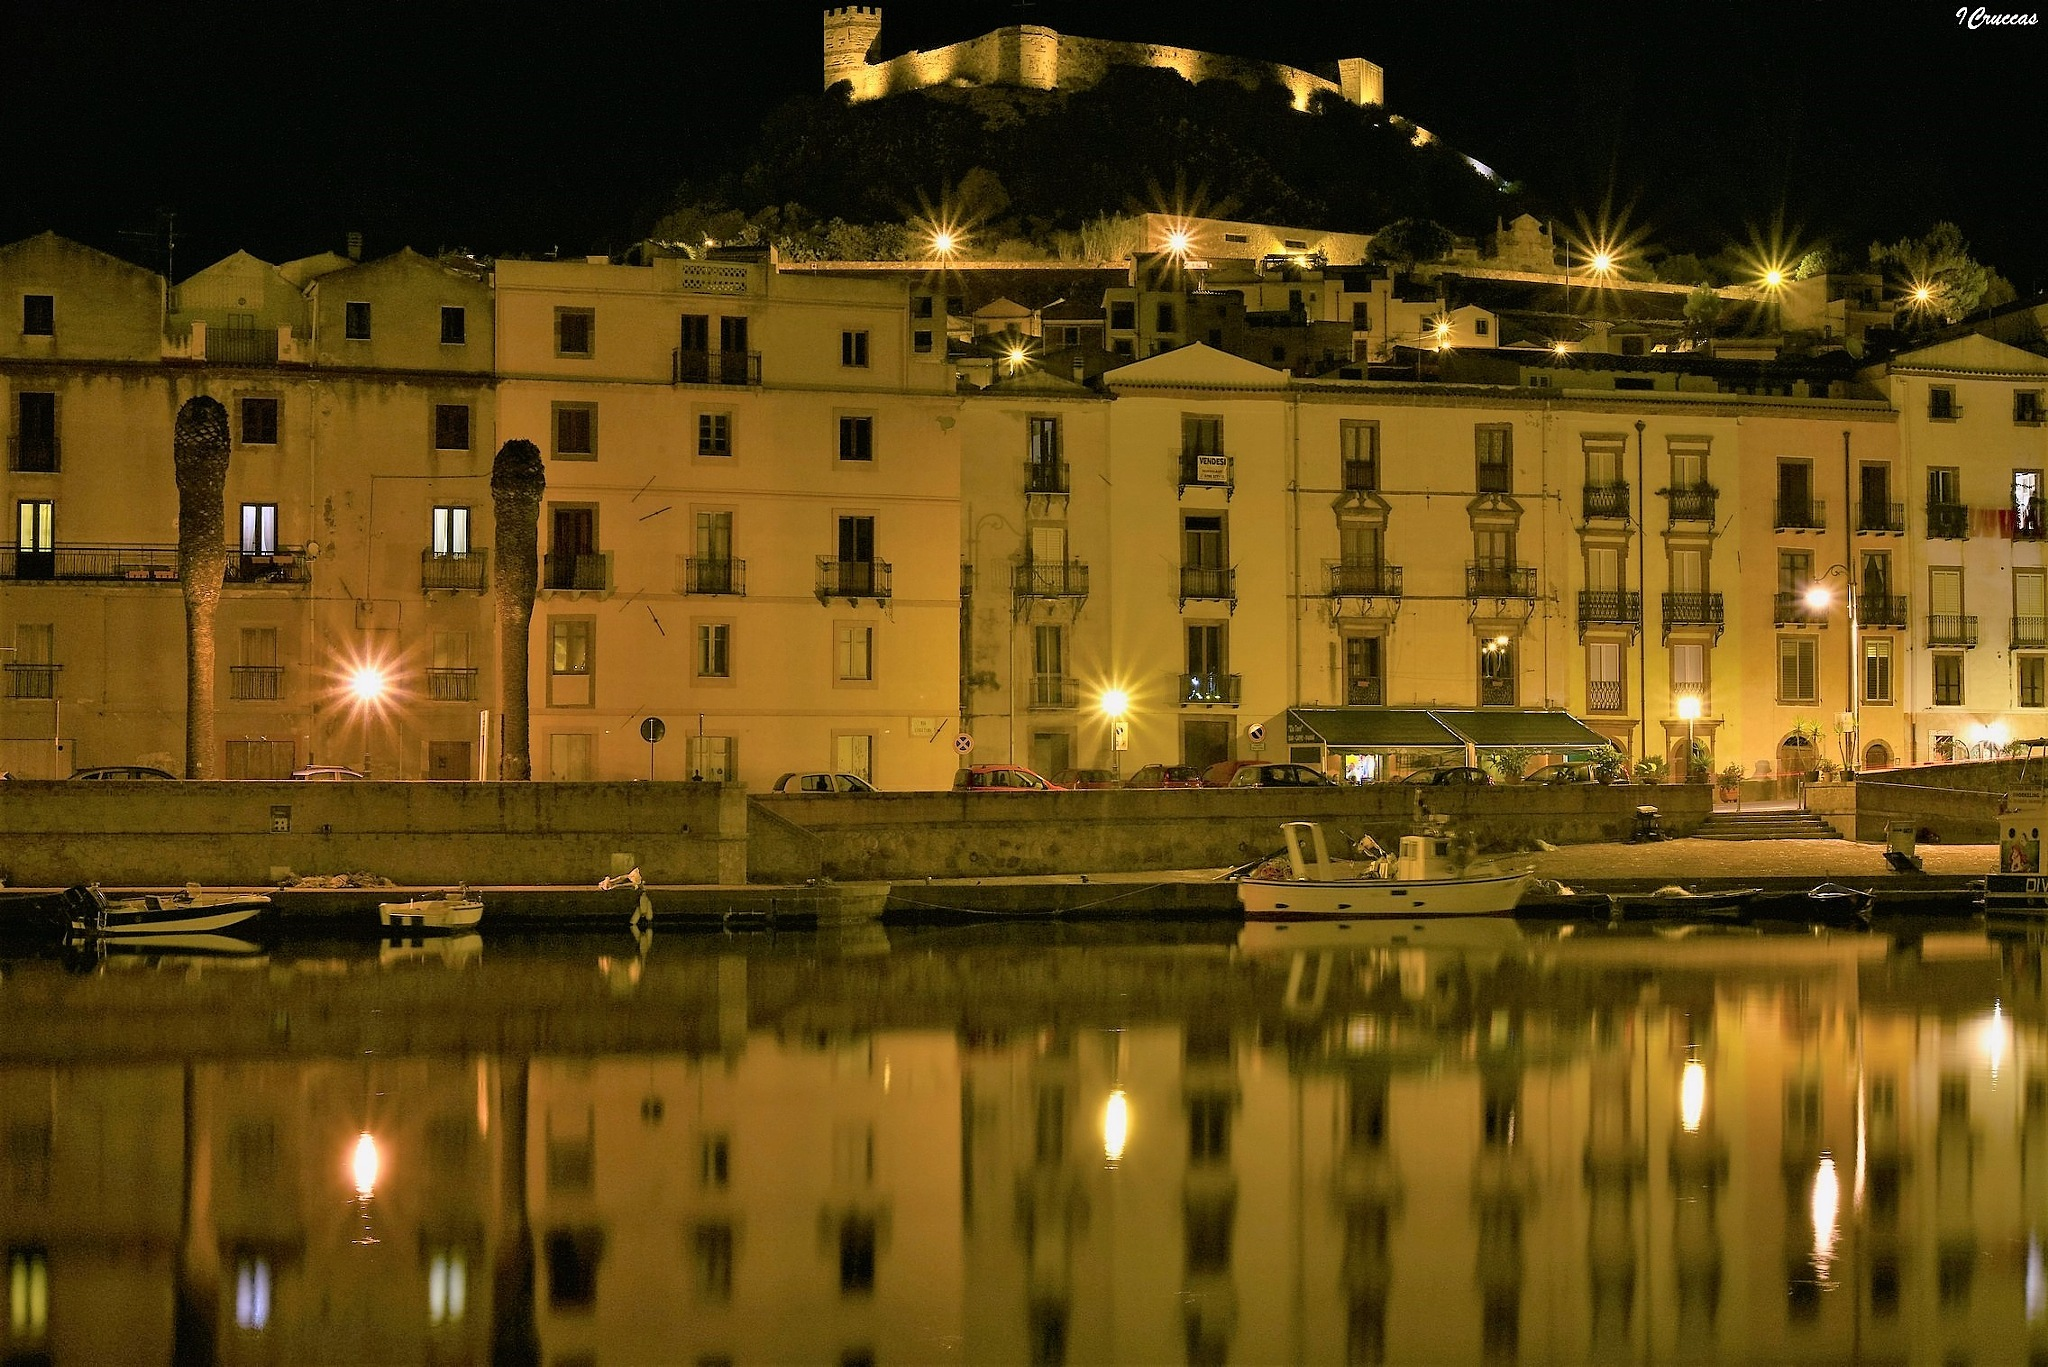 Reflections by night by ignazio cruccas